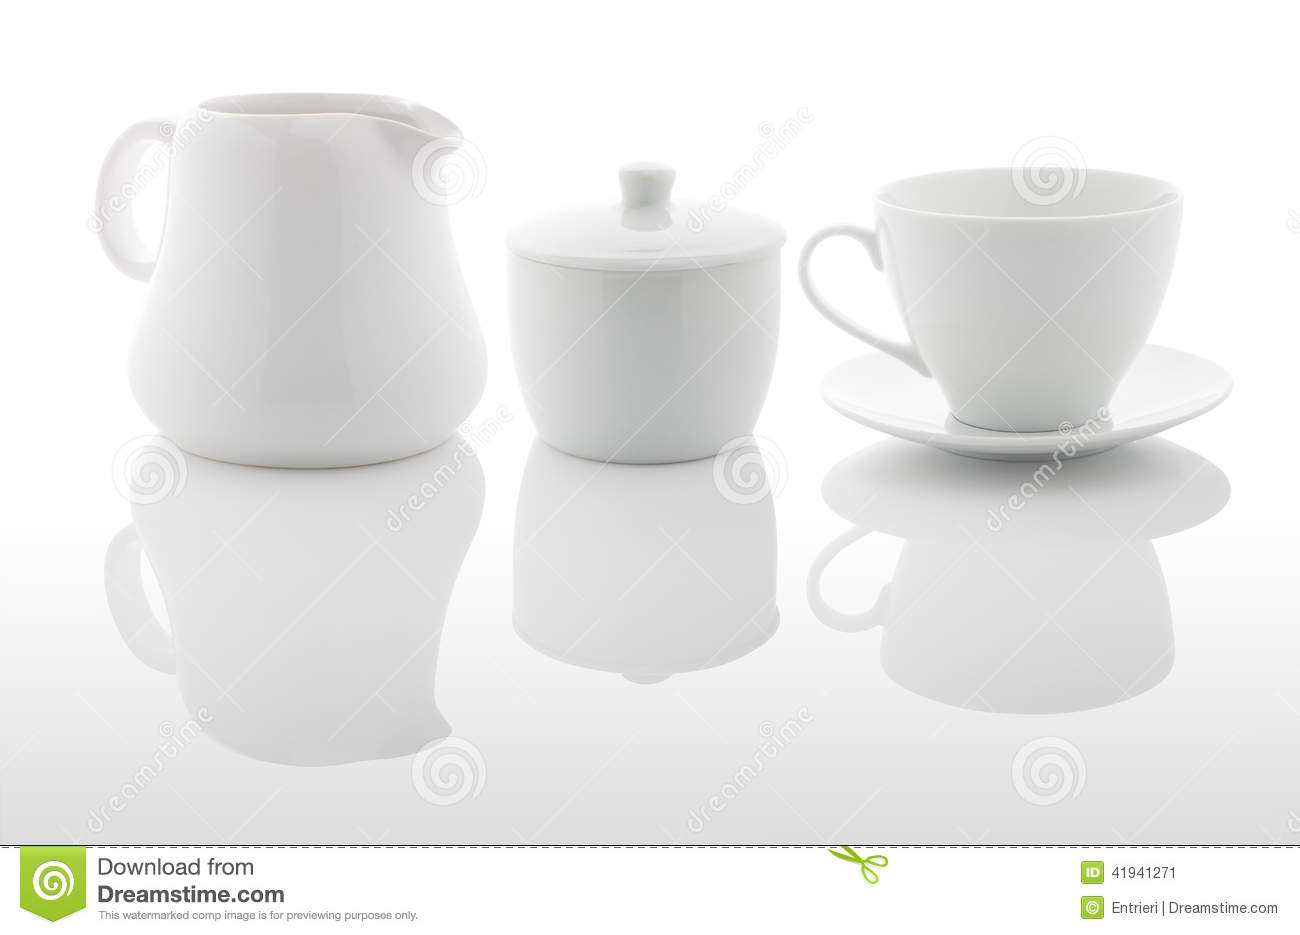 Download White Milk Jug, Sugar Bowl And Coffee Cup Stock Image - Image of cover, background: 41941271